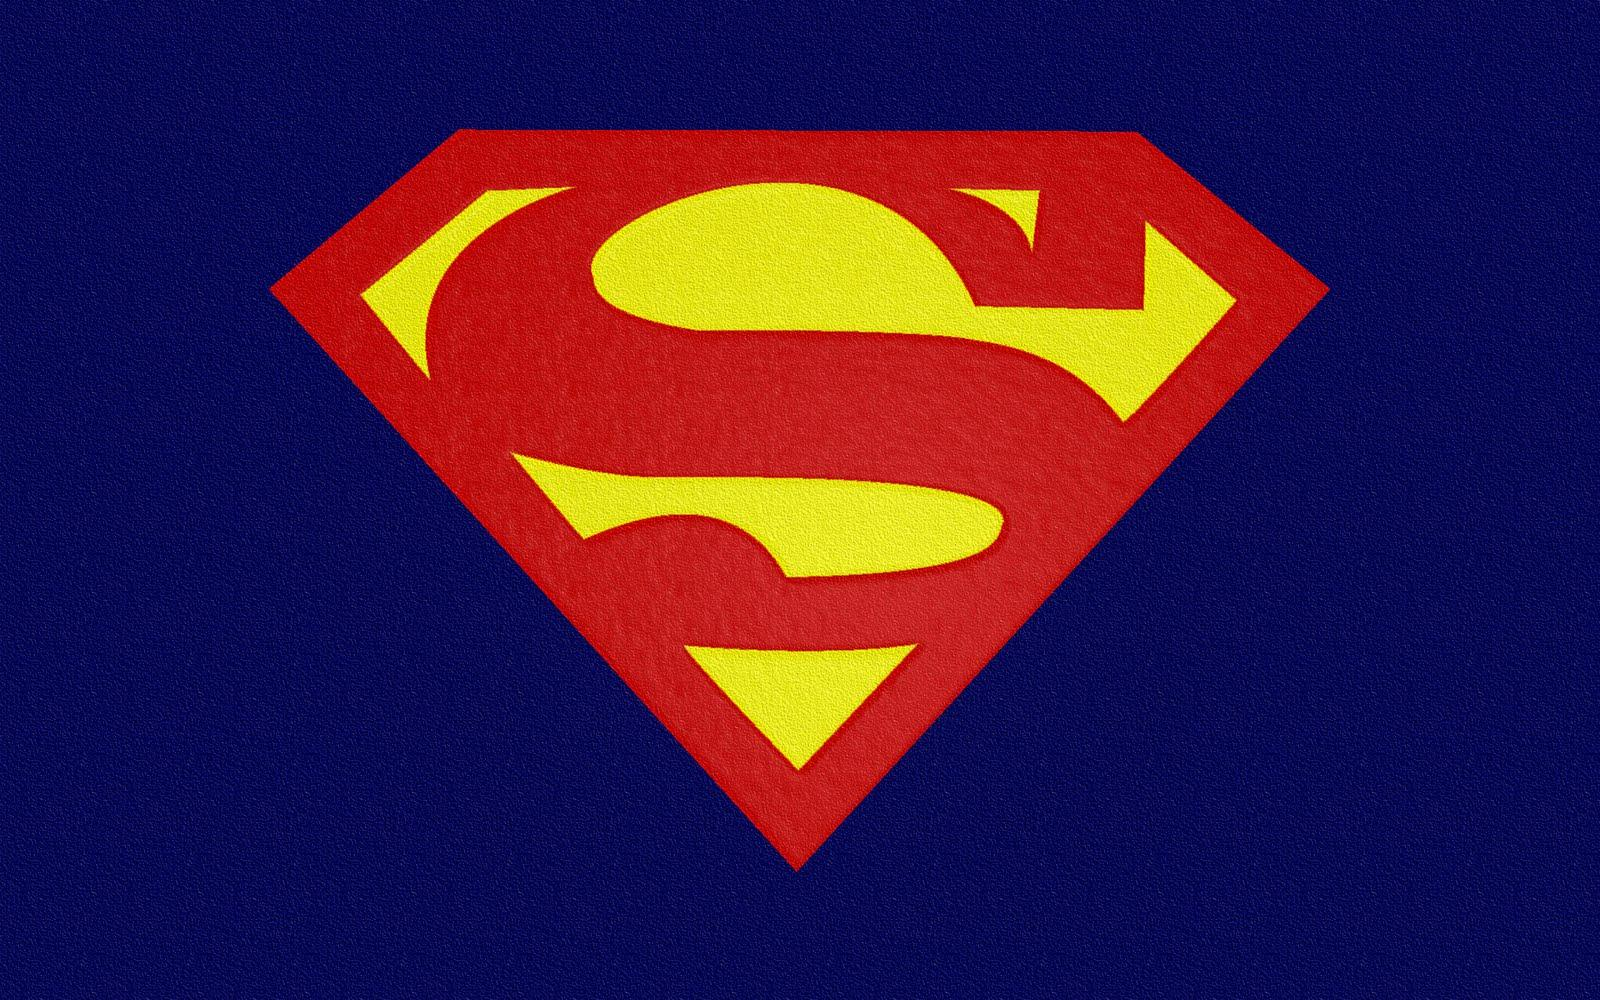 Superman Logo Wallpapers Desktop - Wallpaper Cave